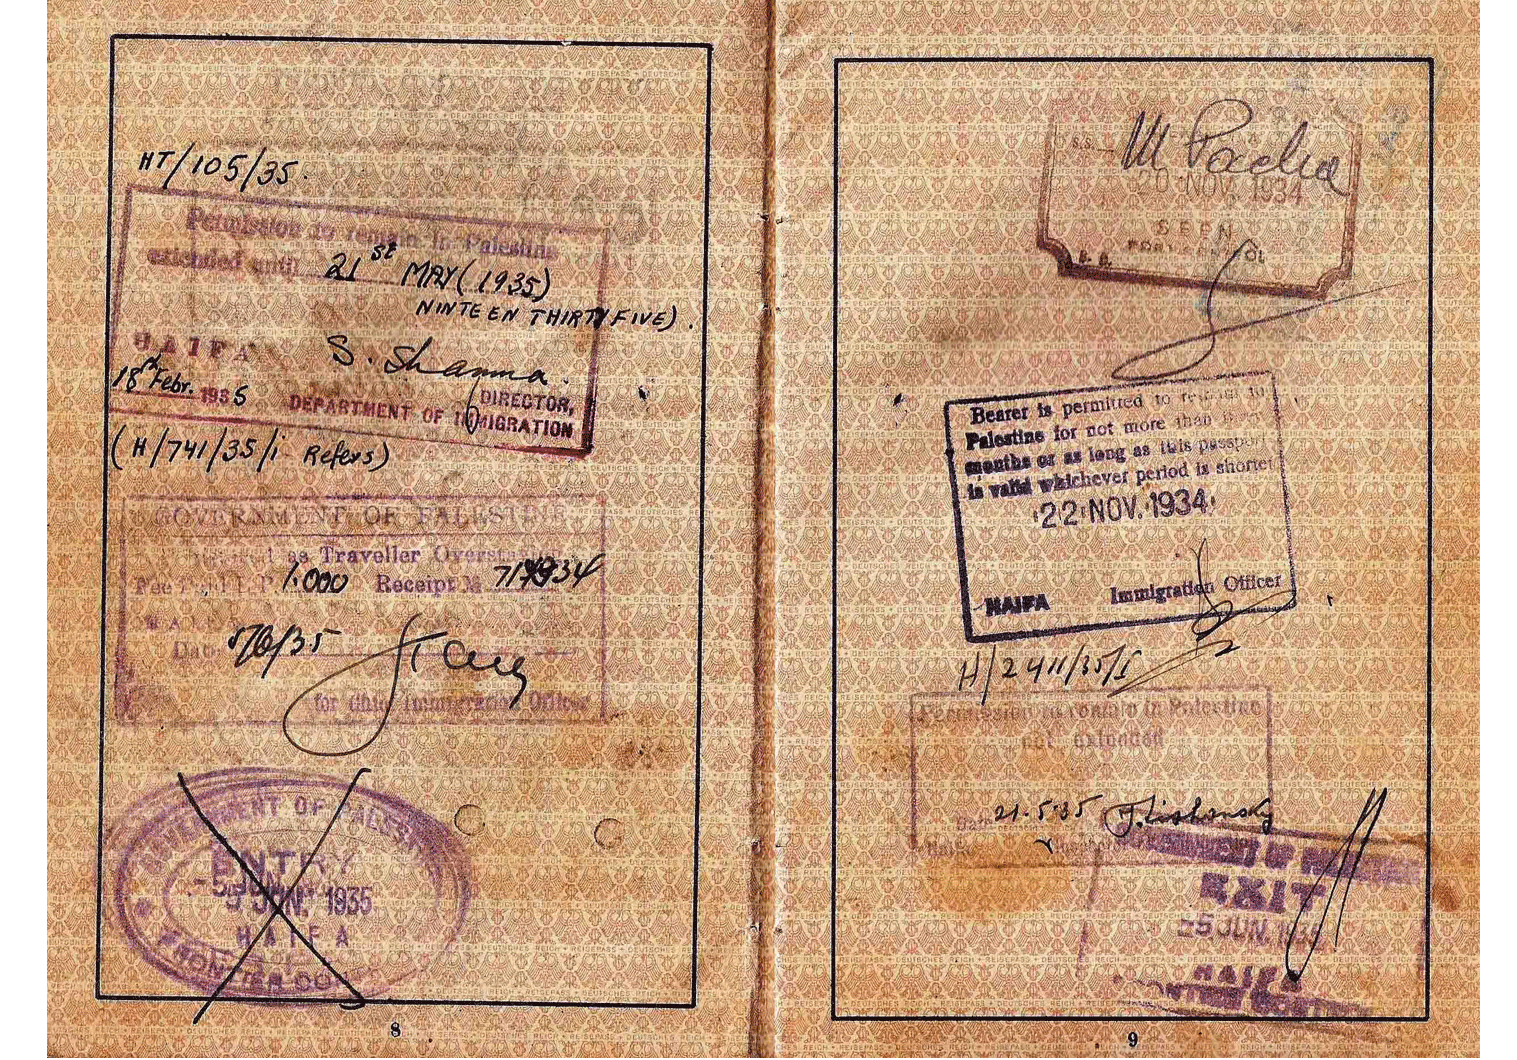 1935 entry to Palestine passport